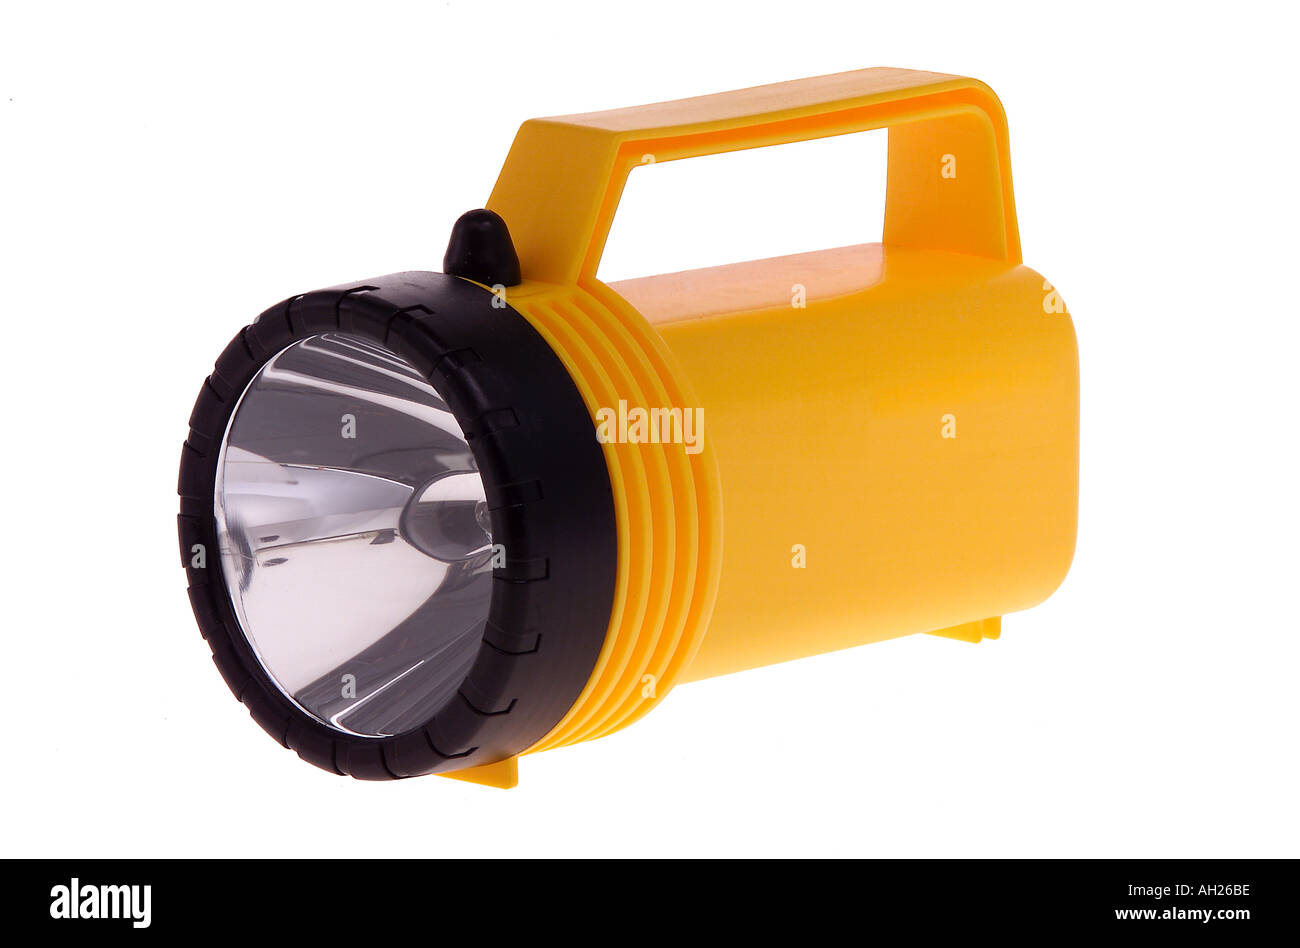 big yellow flashlight silhouetted on white background - Stock Image